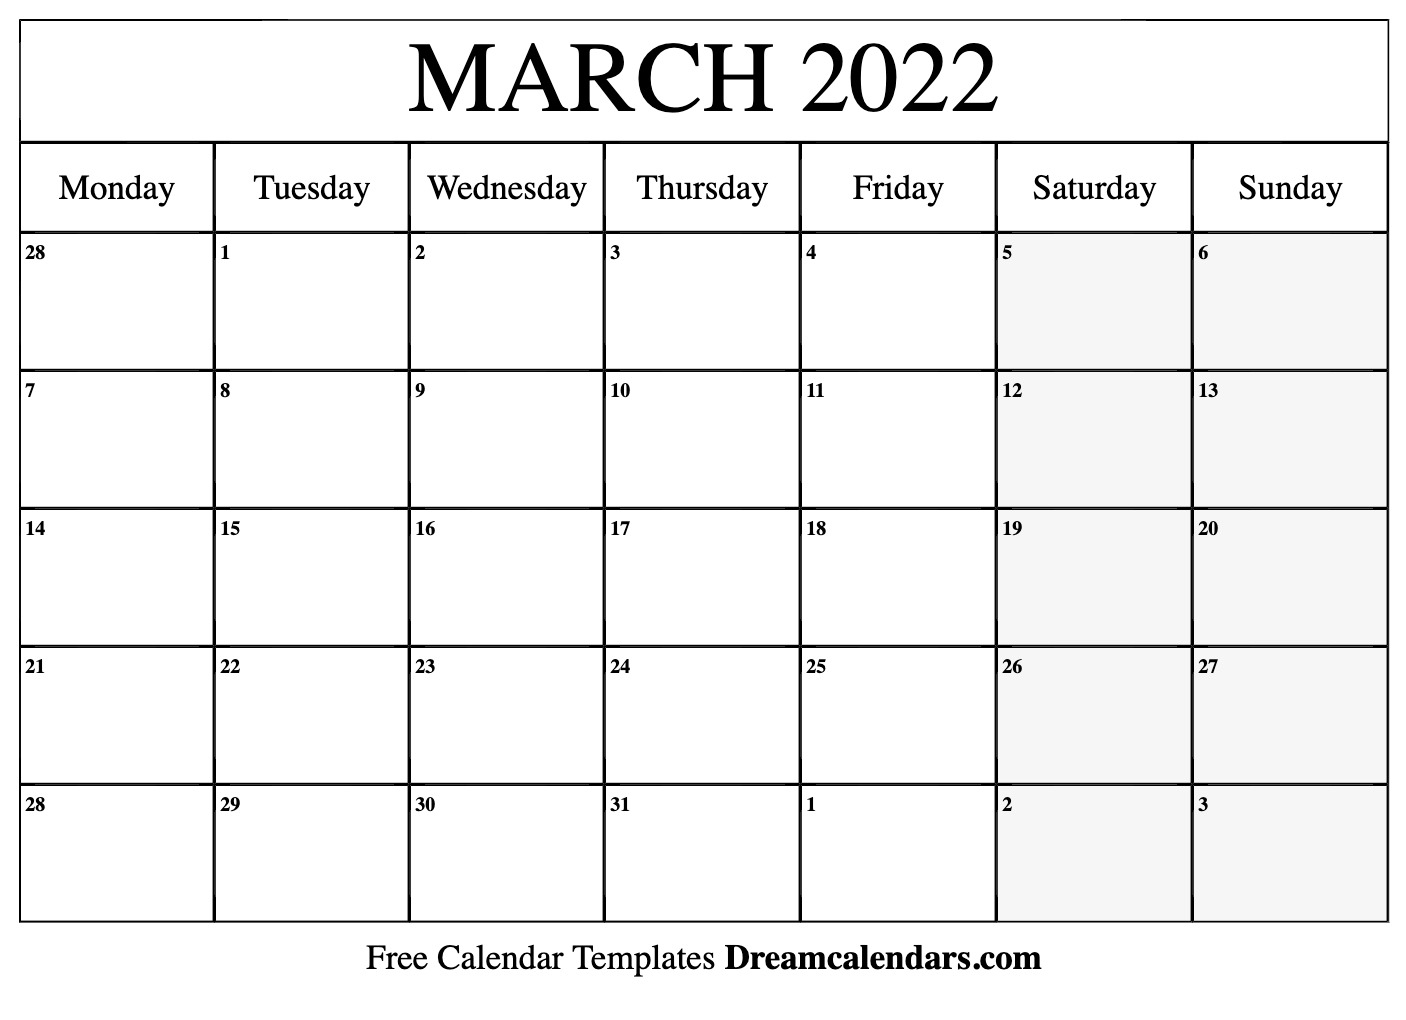 March 2022 Calendar | Free Blank Printable Templates Throughout February March 2022 Calendar